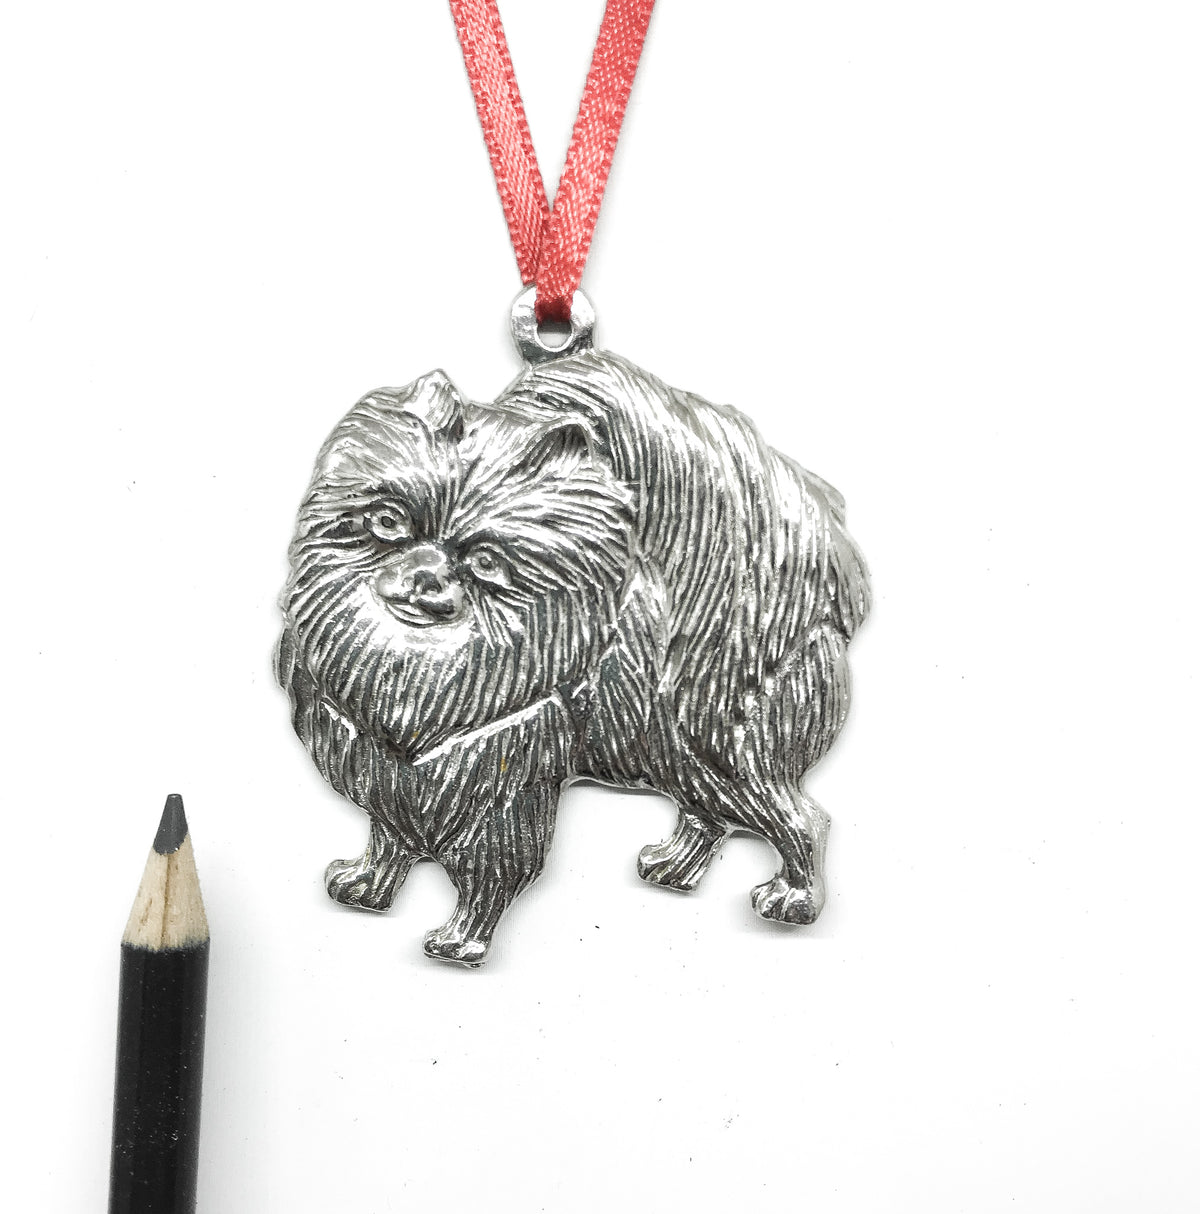 USA Handcrafted Pomeranian Dog Memorial Holiday Keepsake Christmas Ornament Pewter